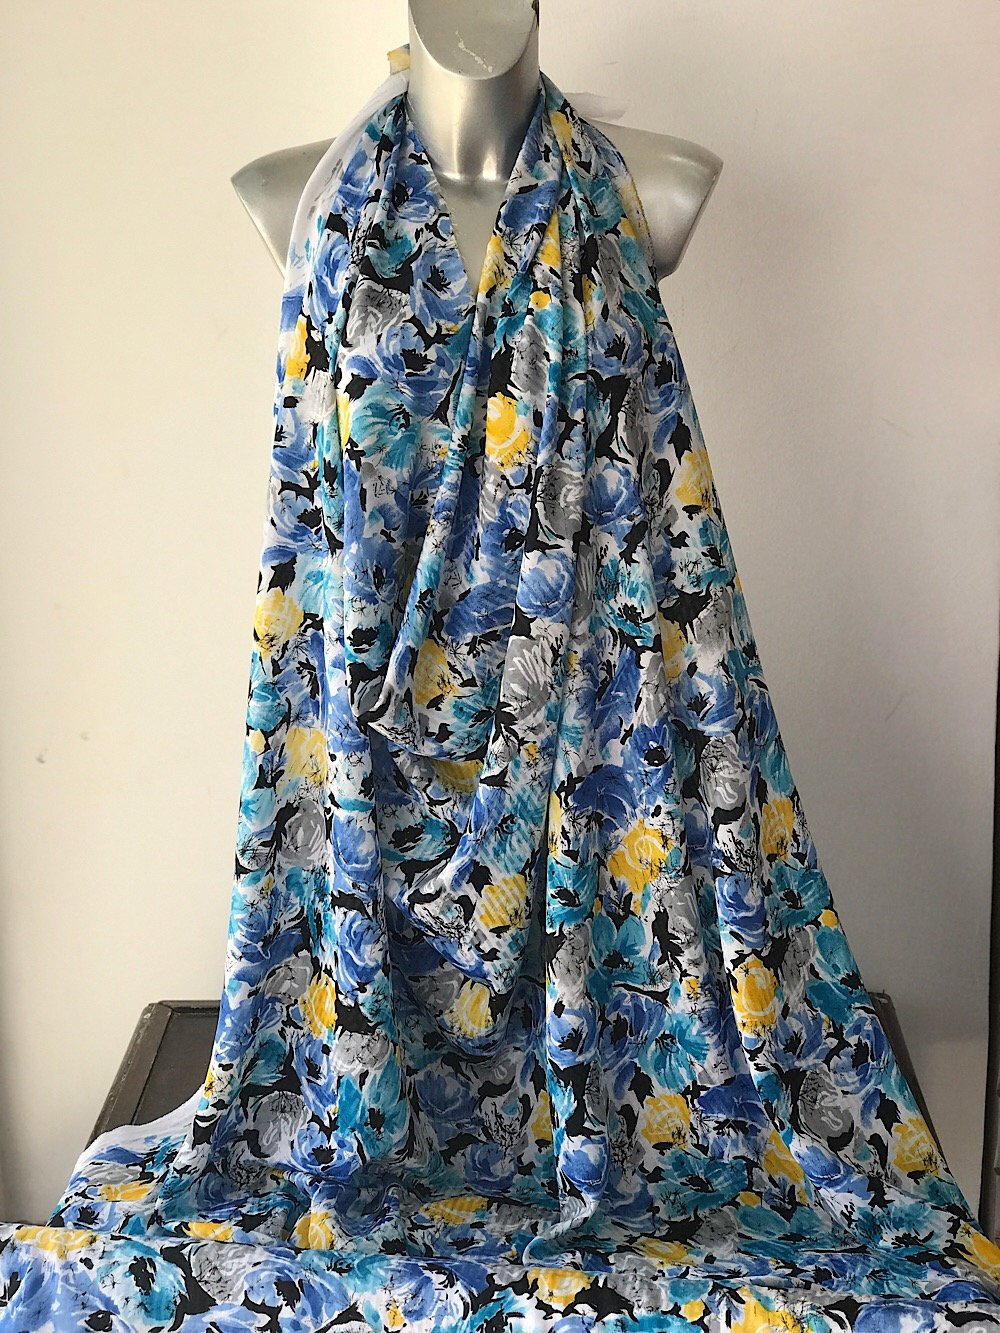 polyester print fabric for summer dress jacquard base floral print blue yellow white 140cm wide